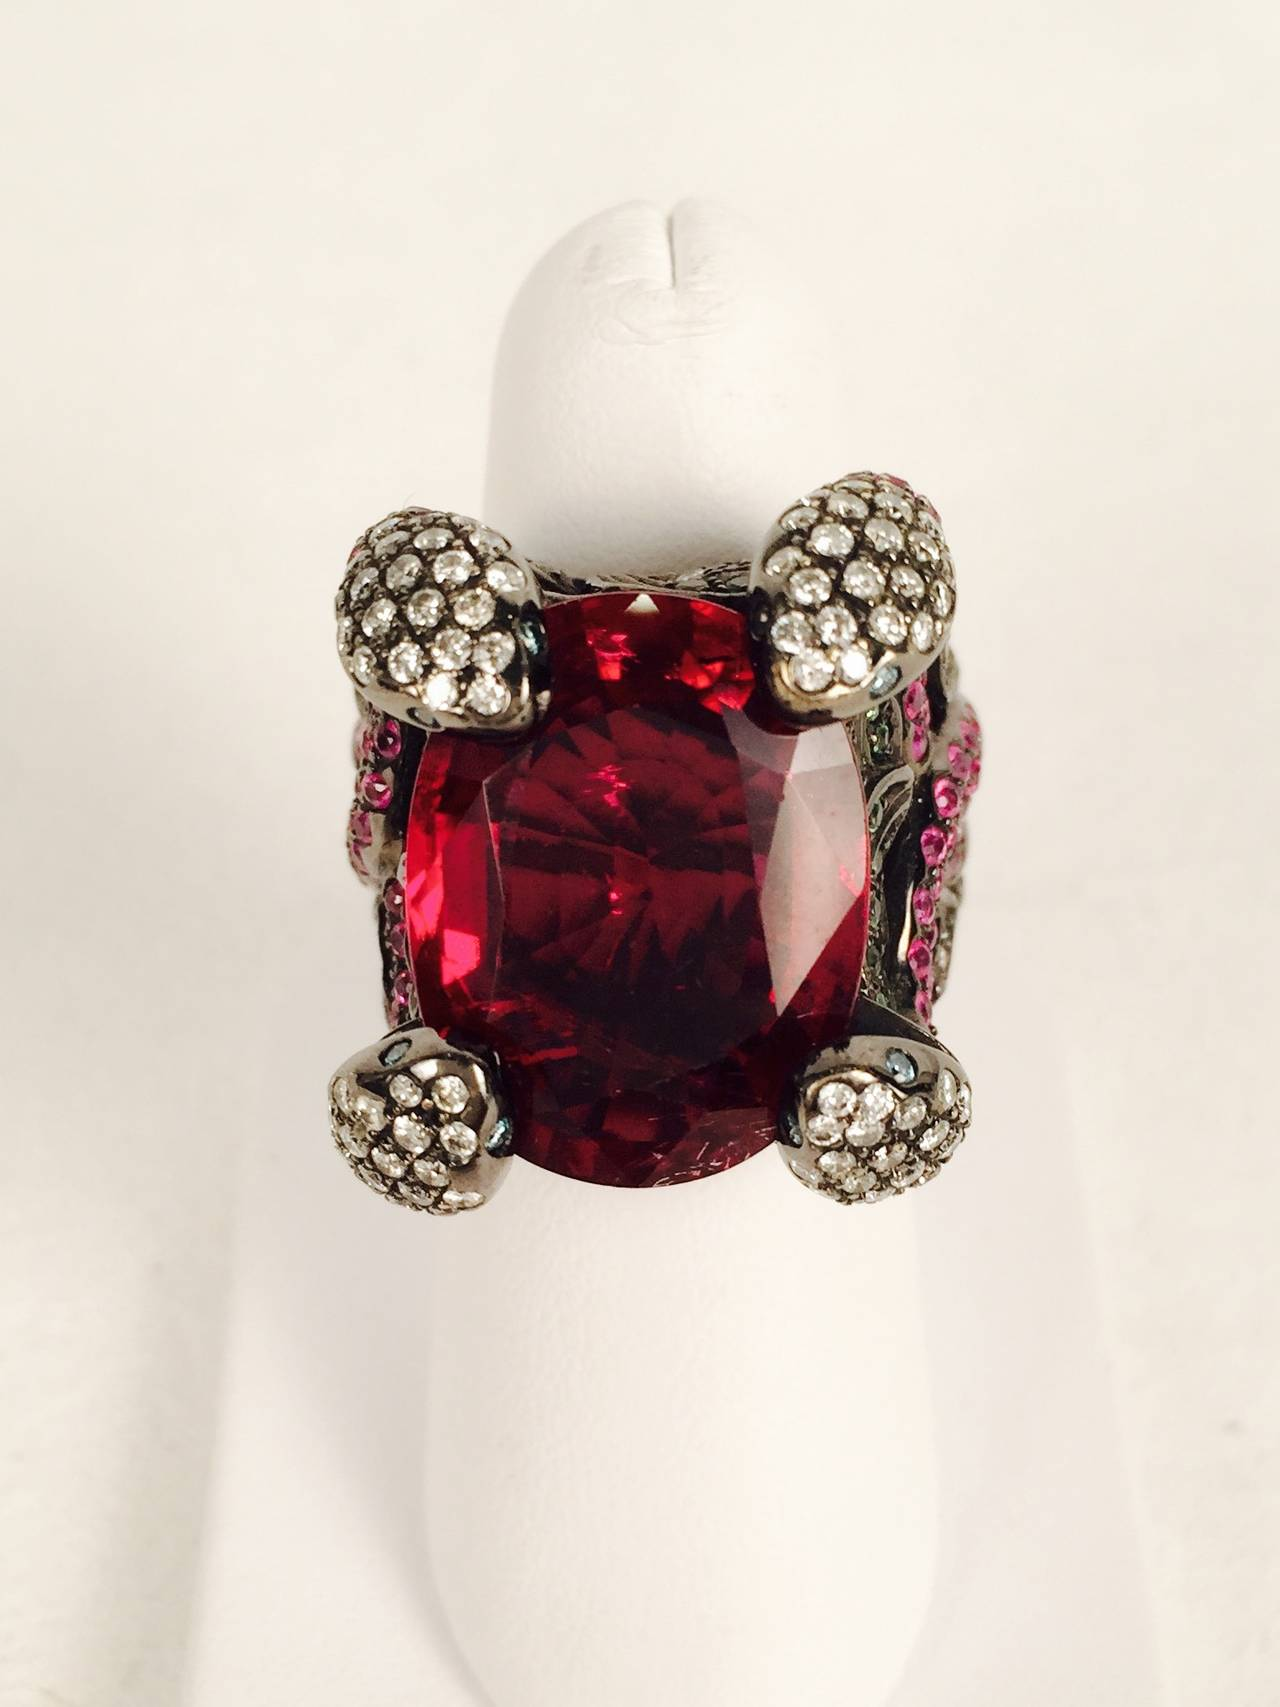 Women's Incredible Rubellite Tourmaline Gold Snake Ring For Sale